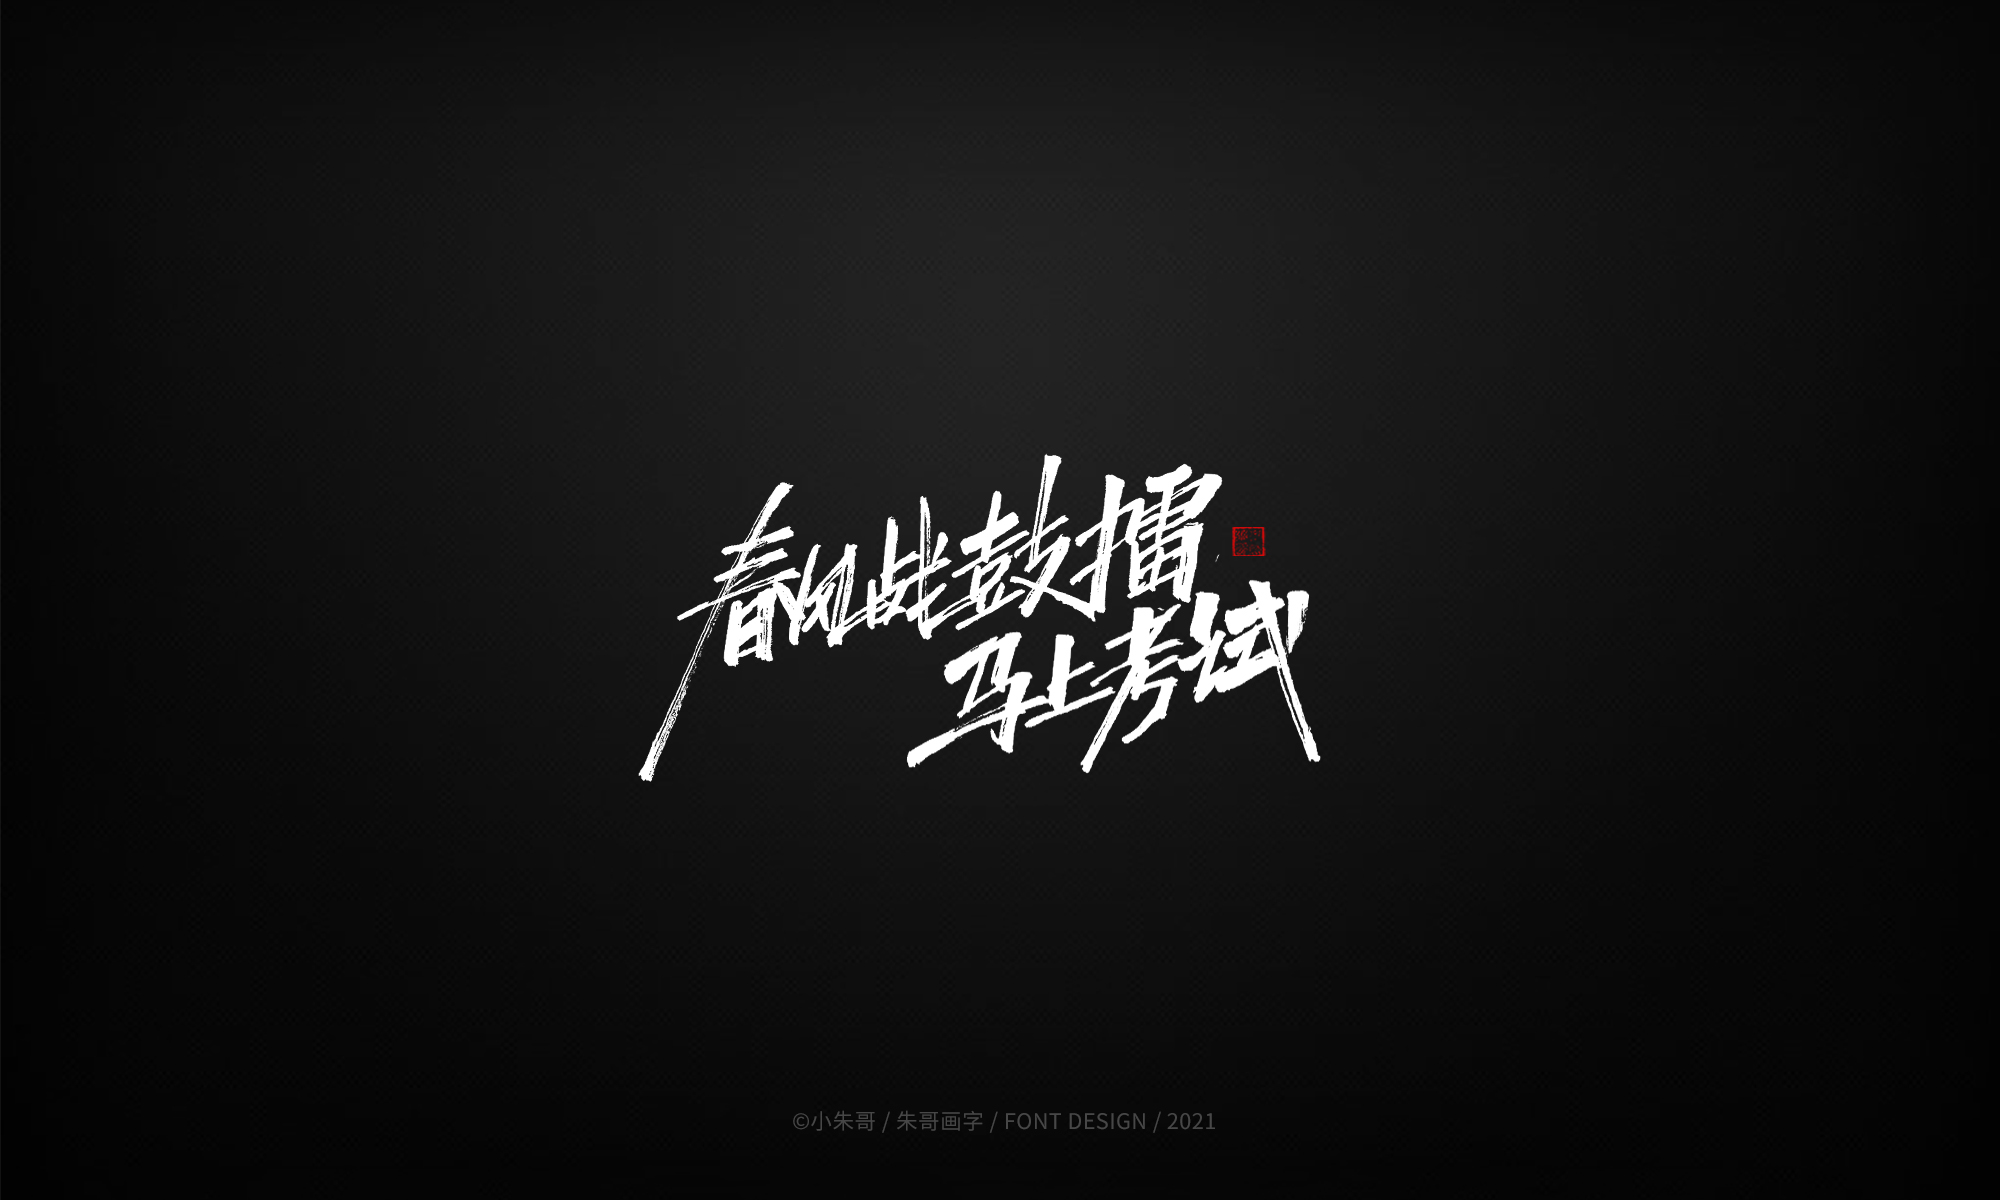 16P Collection of the latest Chinese font design schemes in 2021 #.127